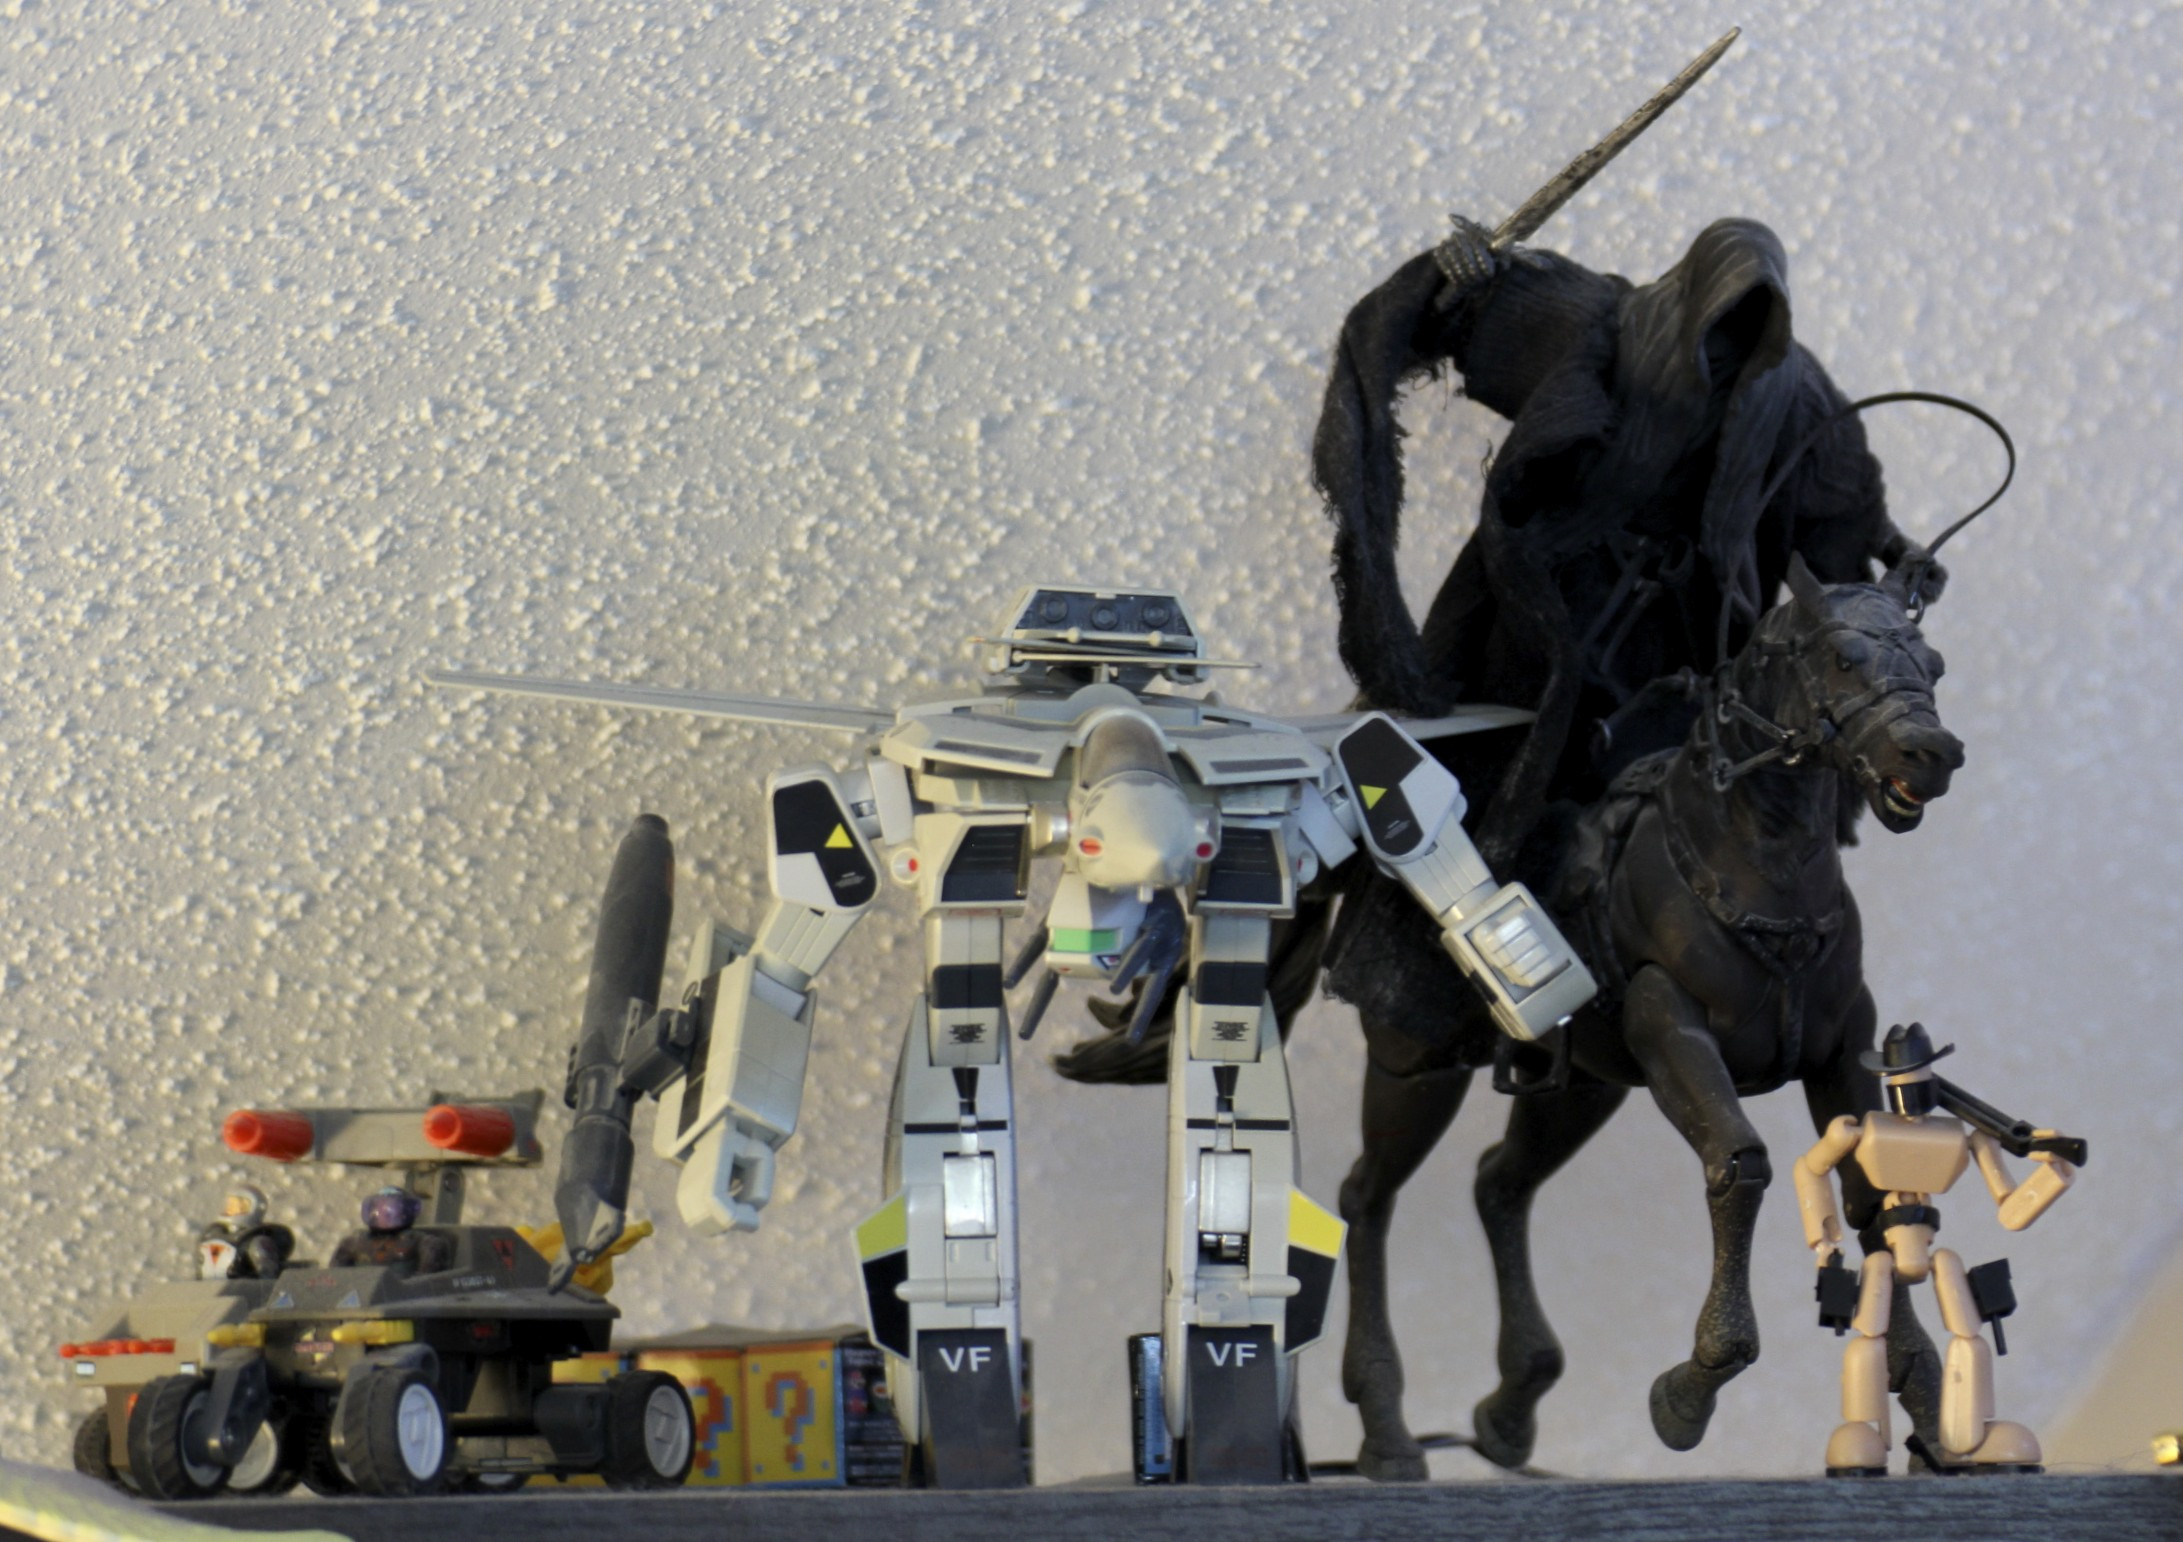 Lord   of the Rings  Ring Wraith, Stikfa Cowboy,  Robotech  Veritech Fighter